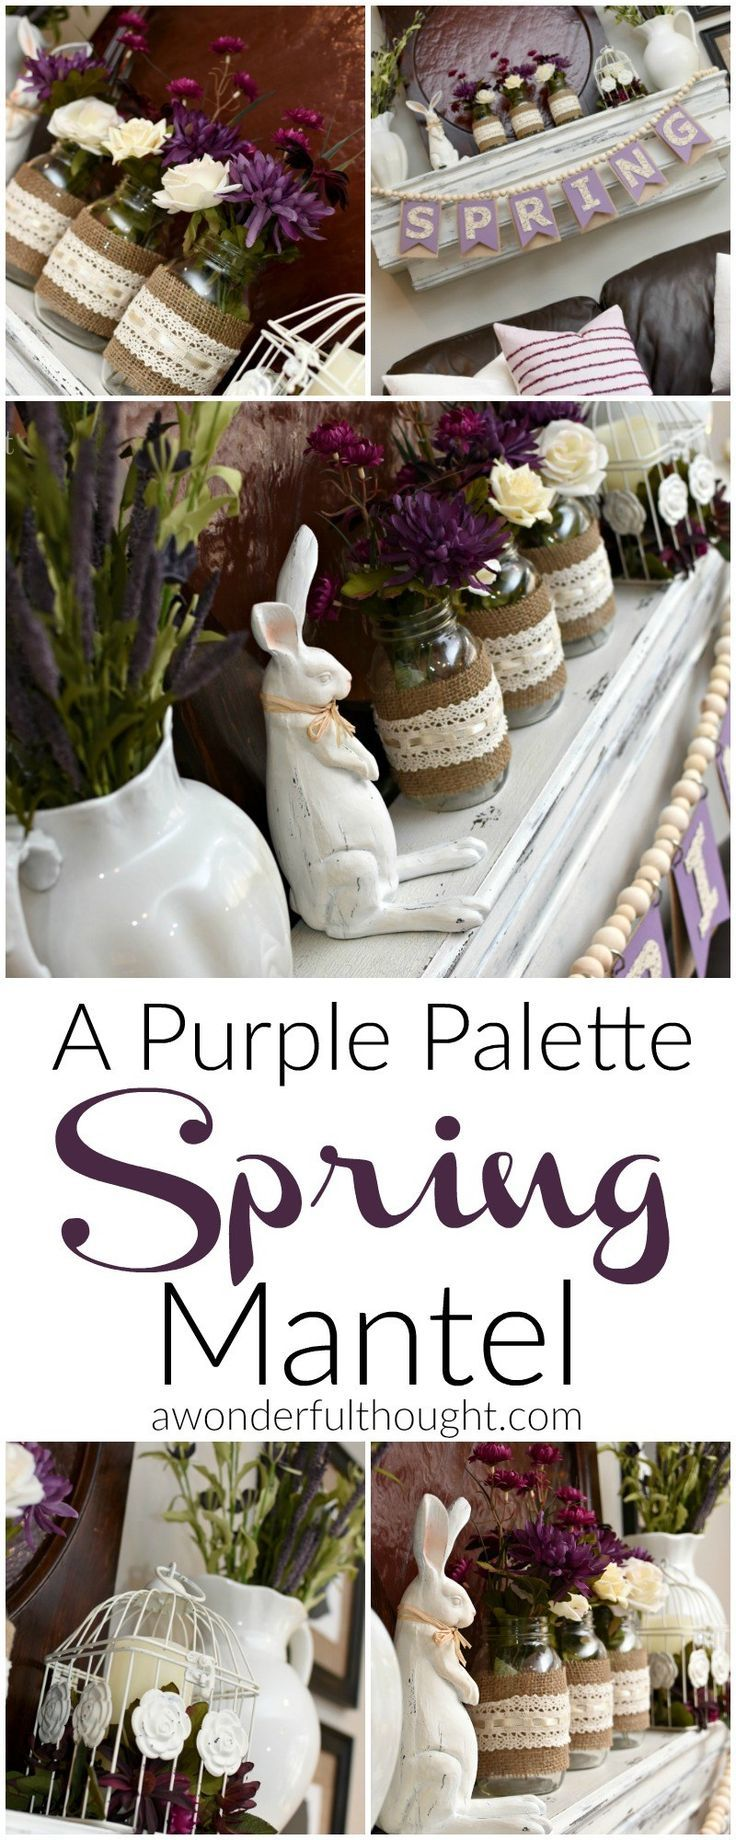 A Purple Palette Spring Mantel. Great Decorating Ideas For Spring Or Easter  | Awonderfulthought.